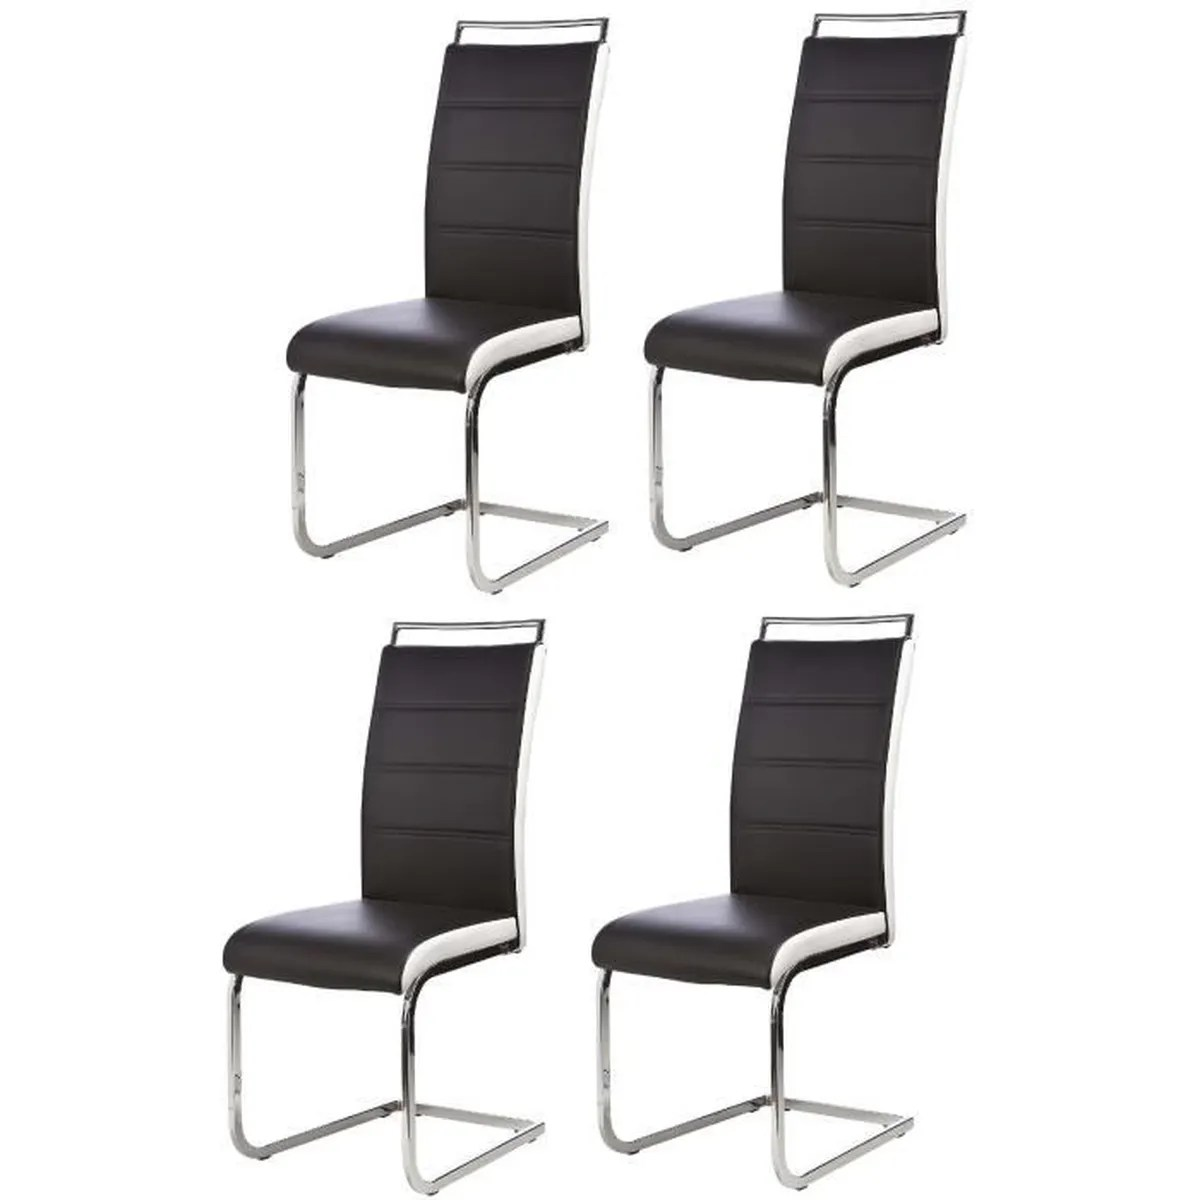 Chaise Salon Dylan Lot De 4 Chaises Salon Noir Blanc Achat Vente